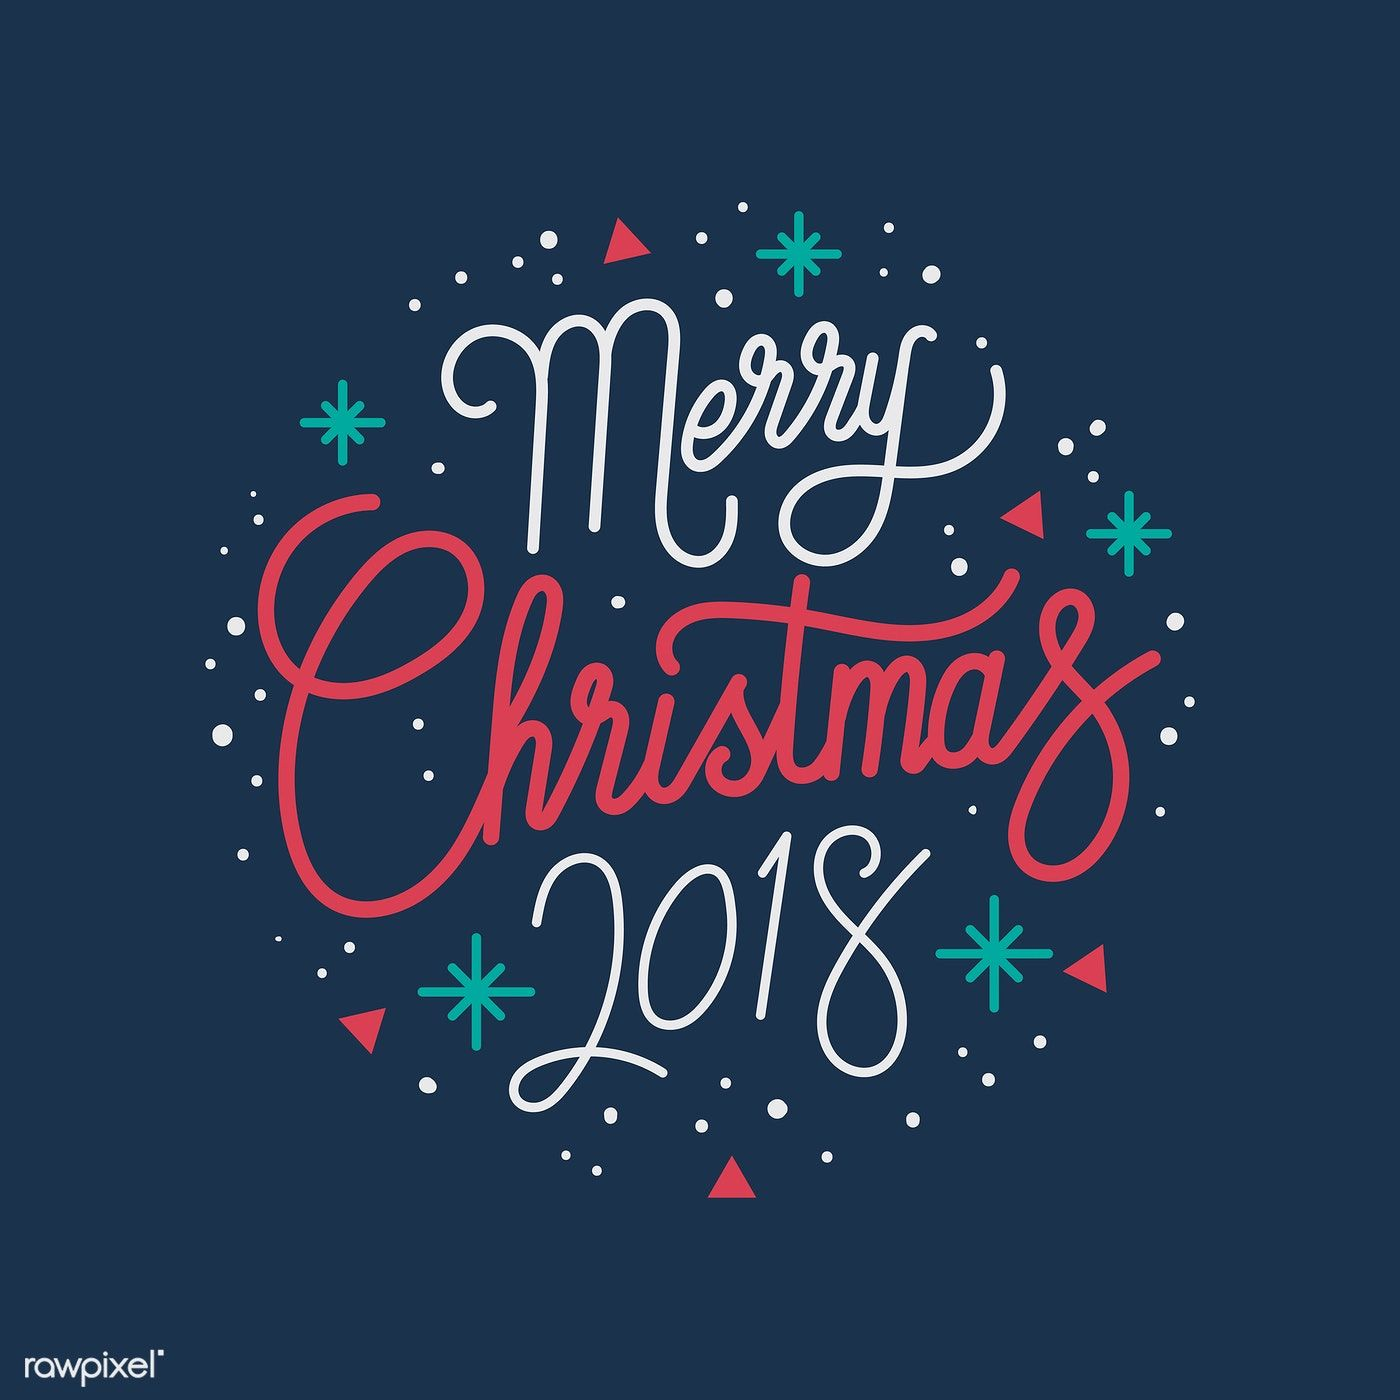 Merry Christmas 2018 greeting badge vector free image by